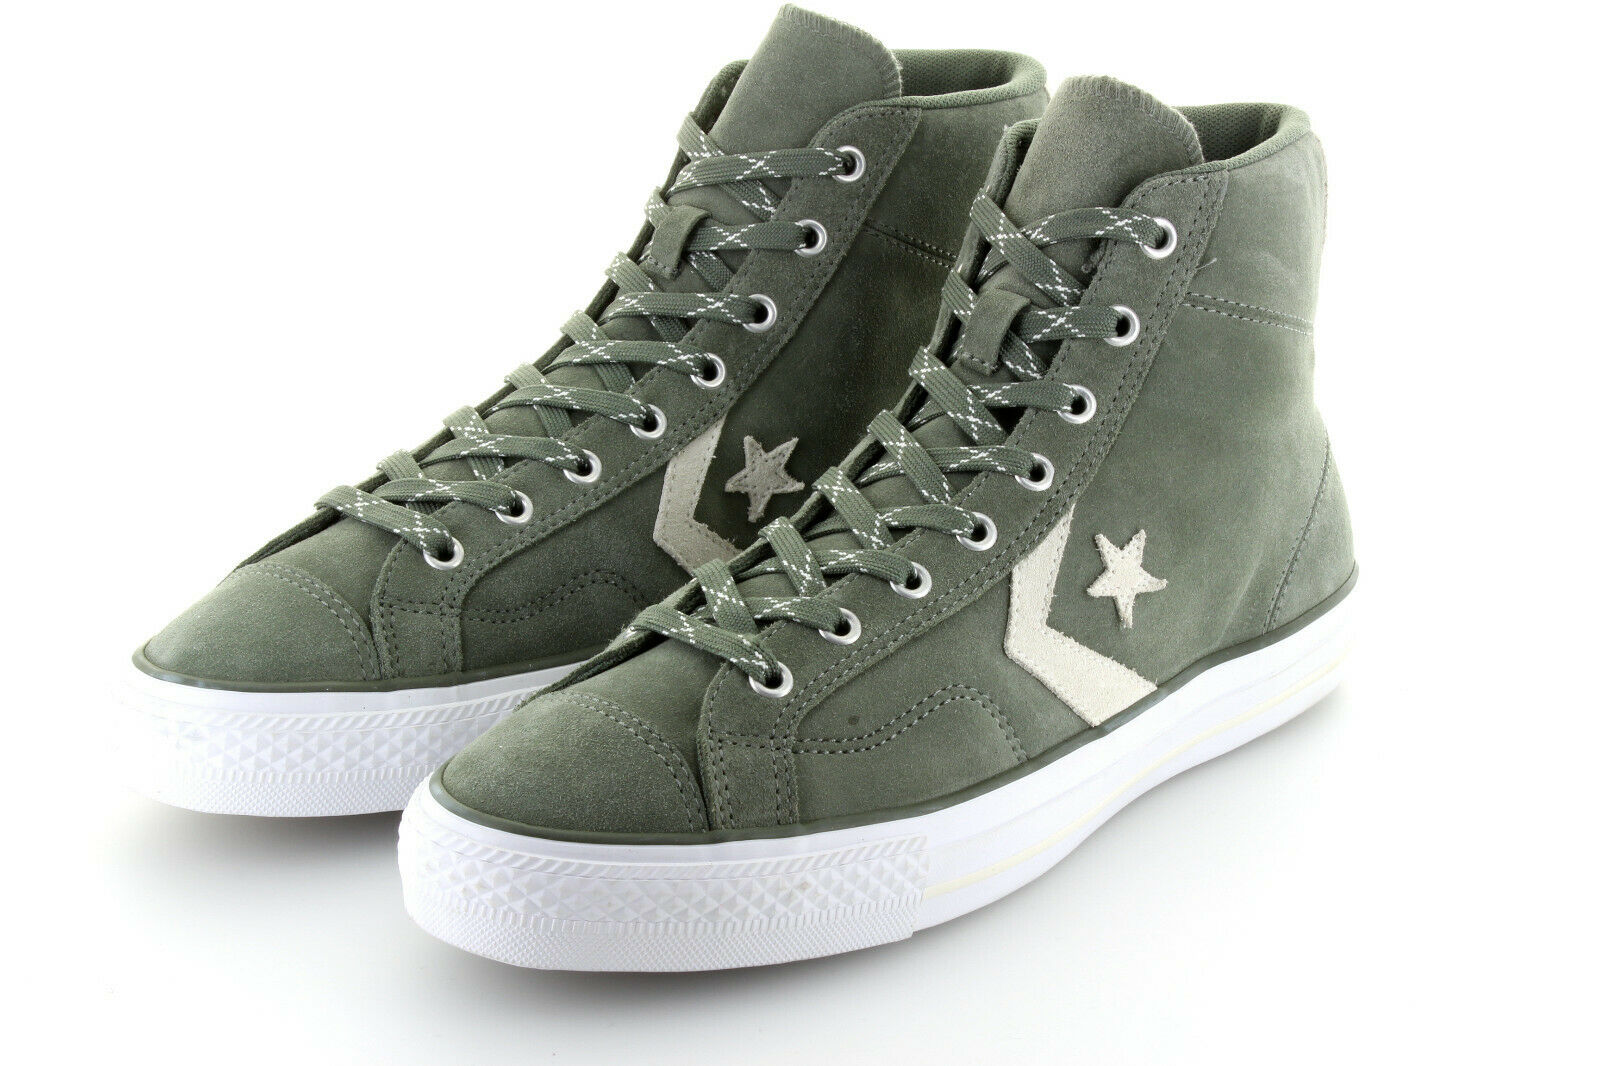 Converse Cons Star Player Hi Olive Submarine Wildleder Suede Gr. 42,5   43,5